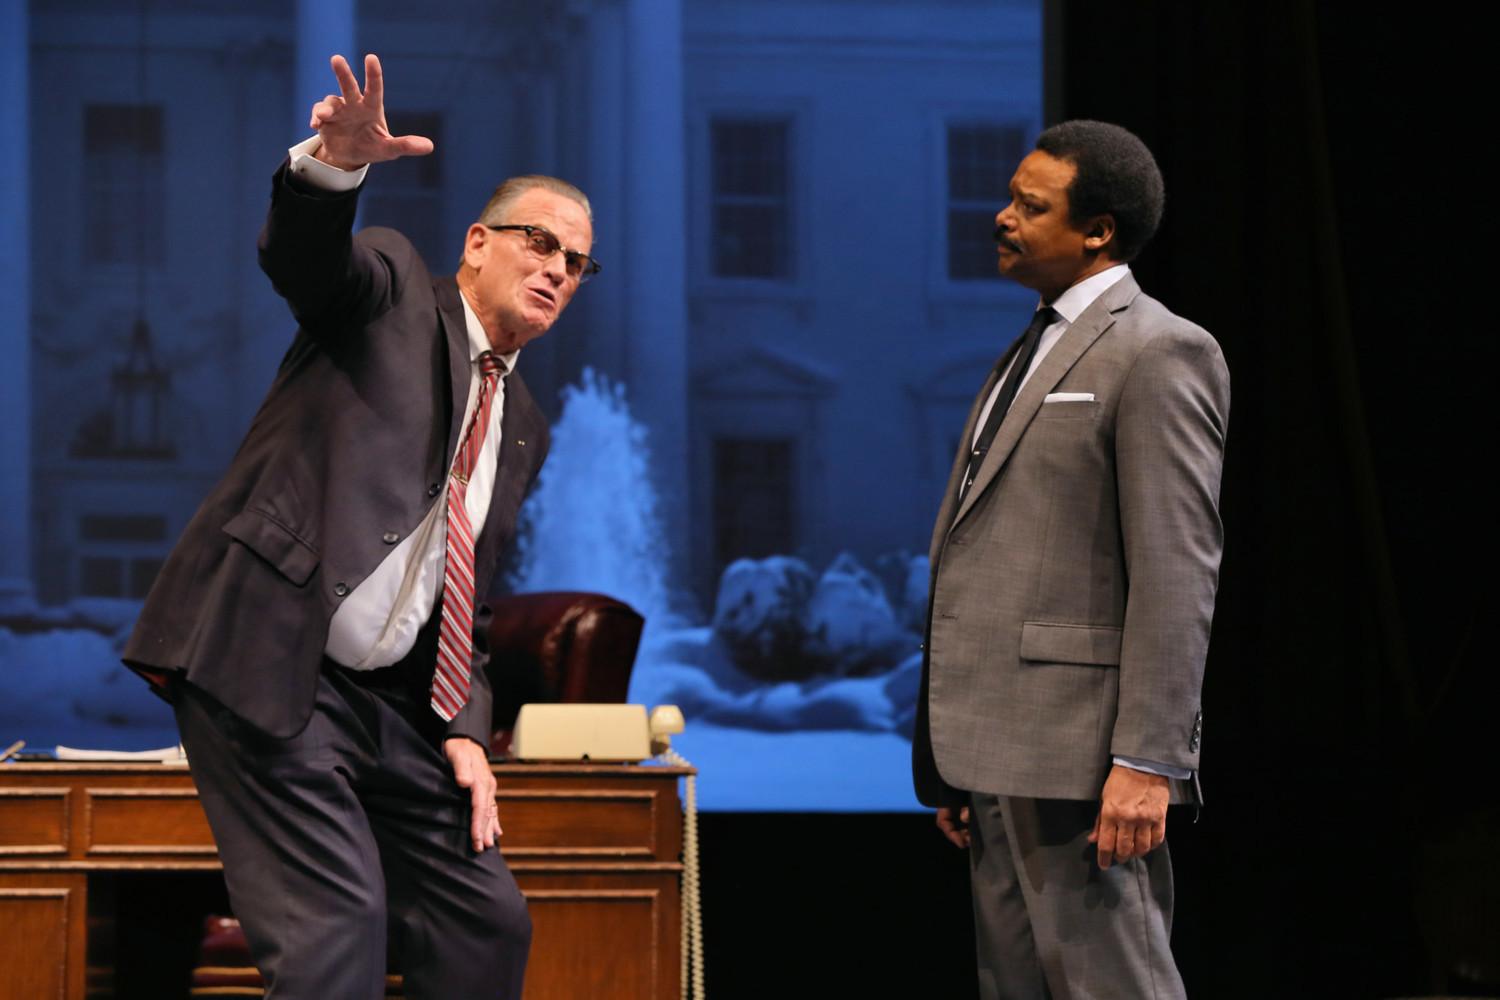 BWW Review: Consummate Performance Anchors THE GREAT SOCIETY at History Theatre